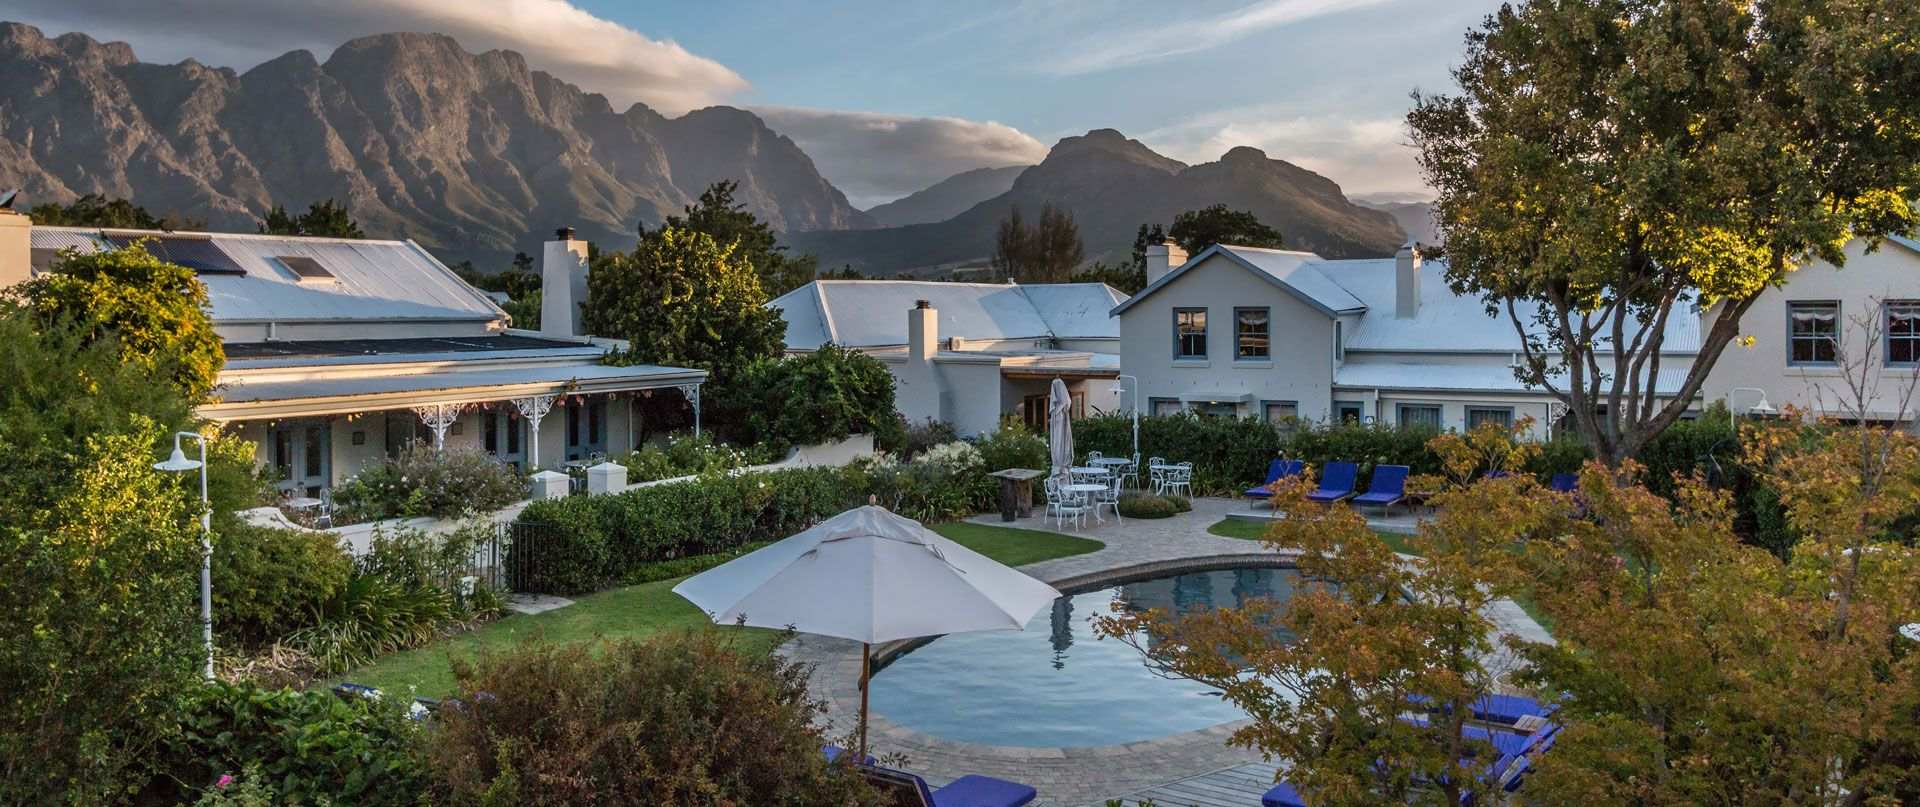 weekend getaways near Cape Town